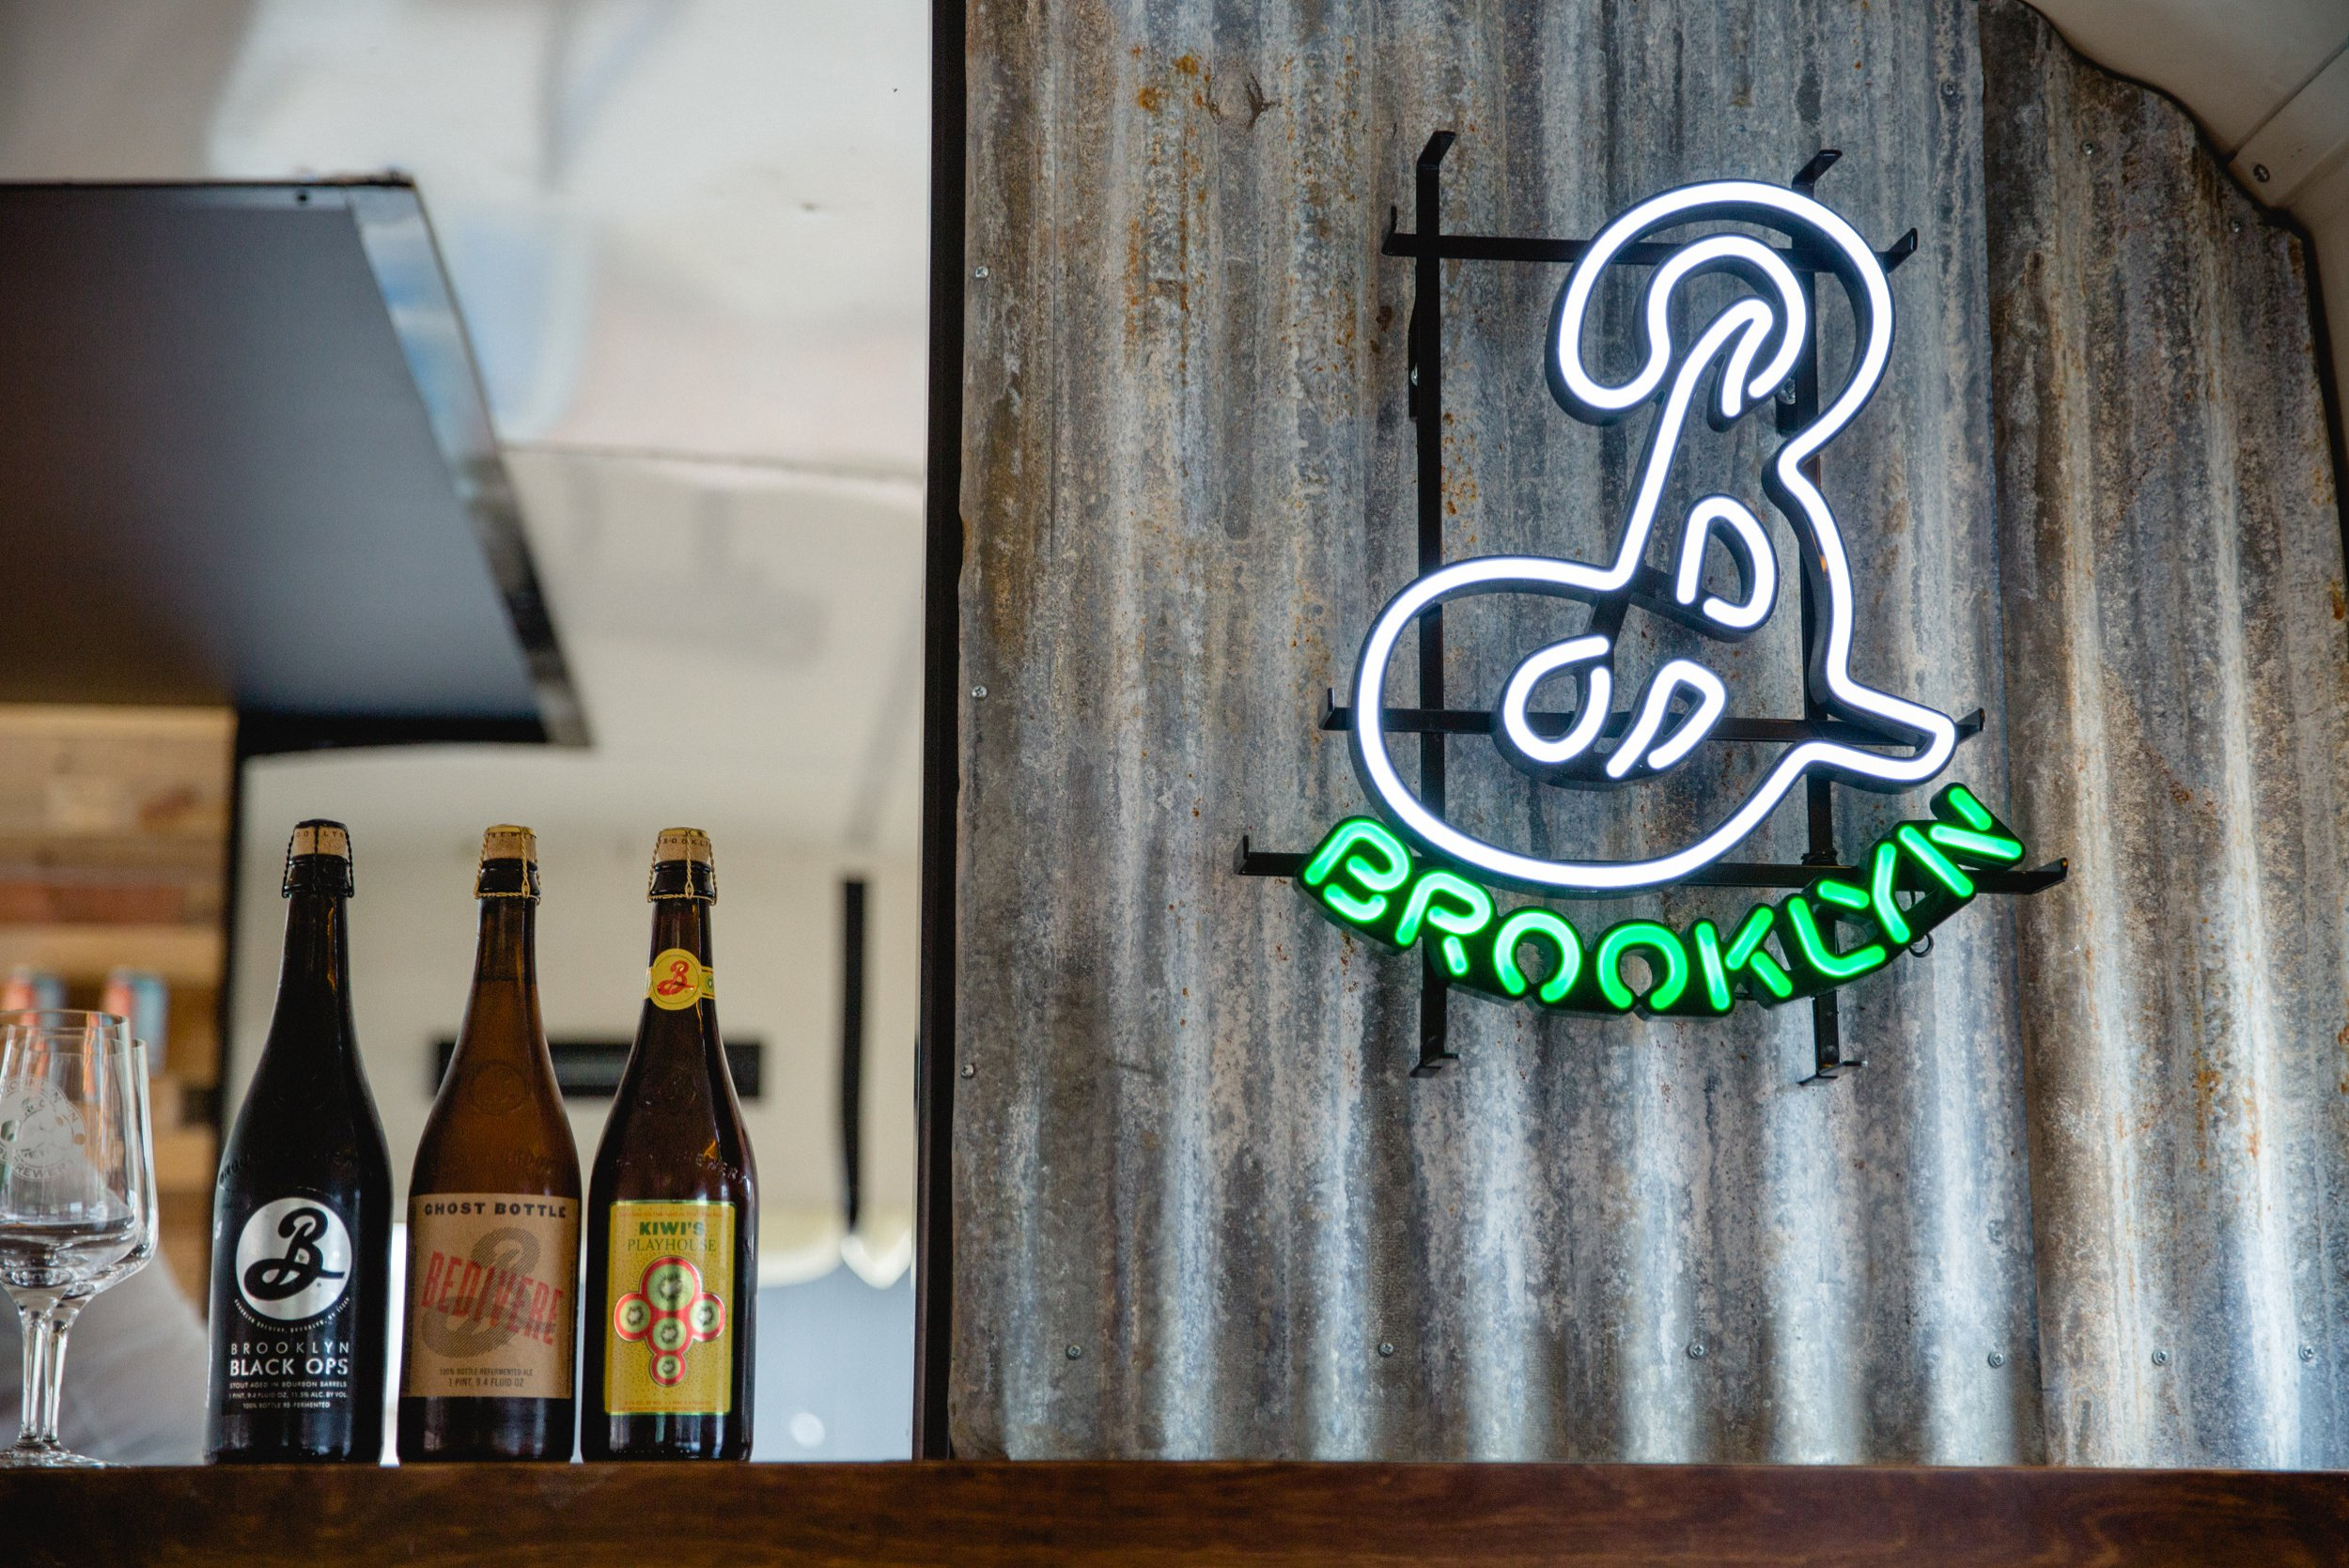 Brooklyn Brewery small batch craft beer bottles and neon logo